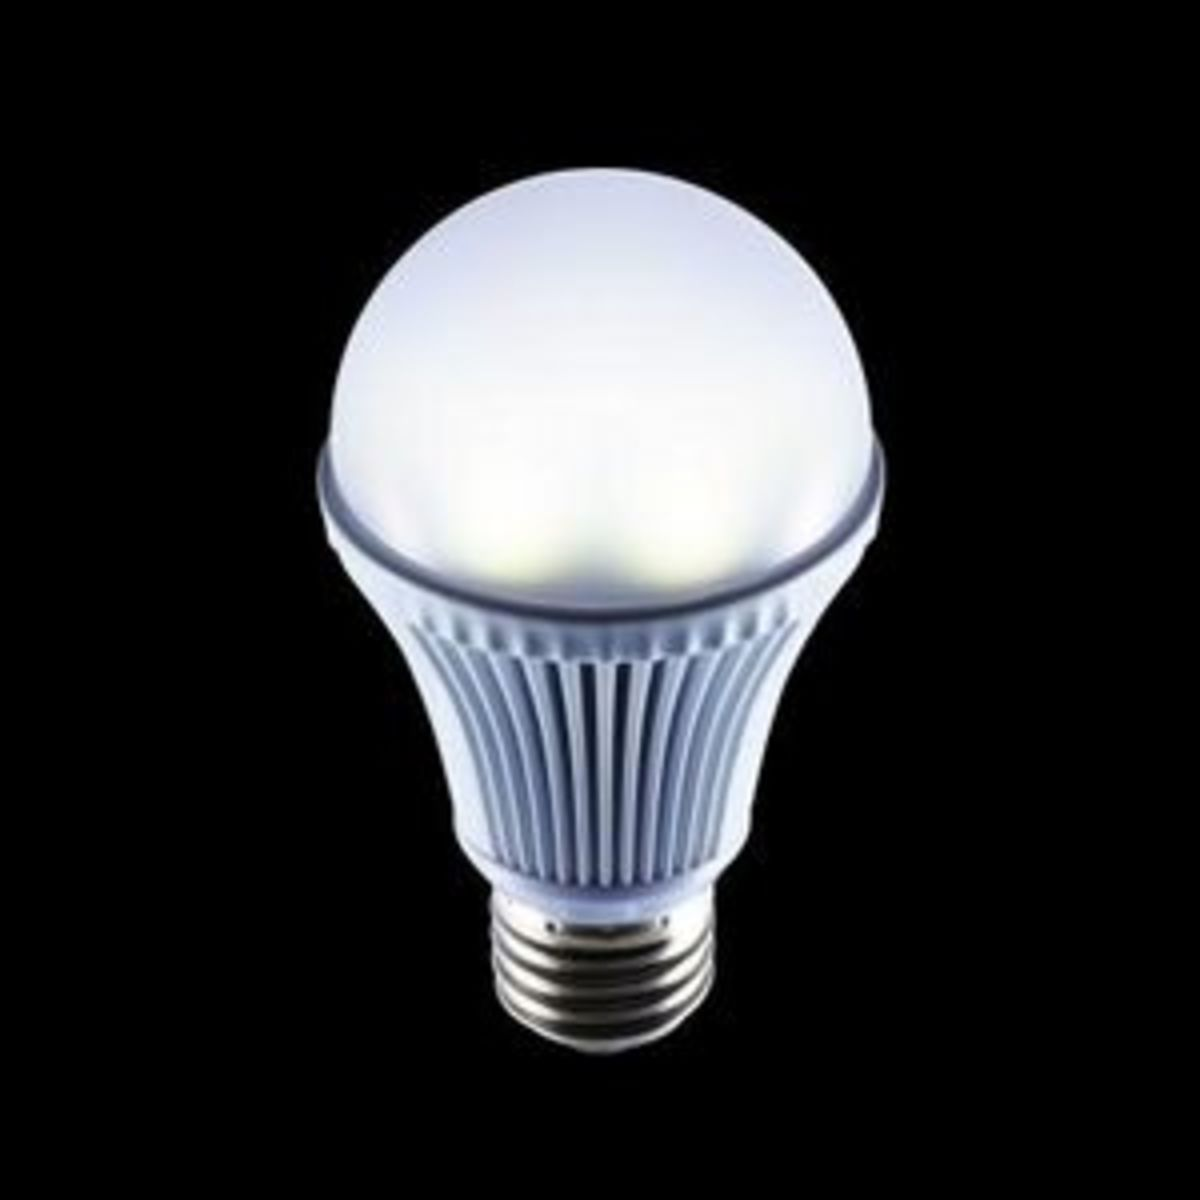 A typical LED light for home interior lighting